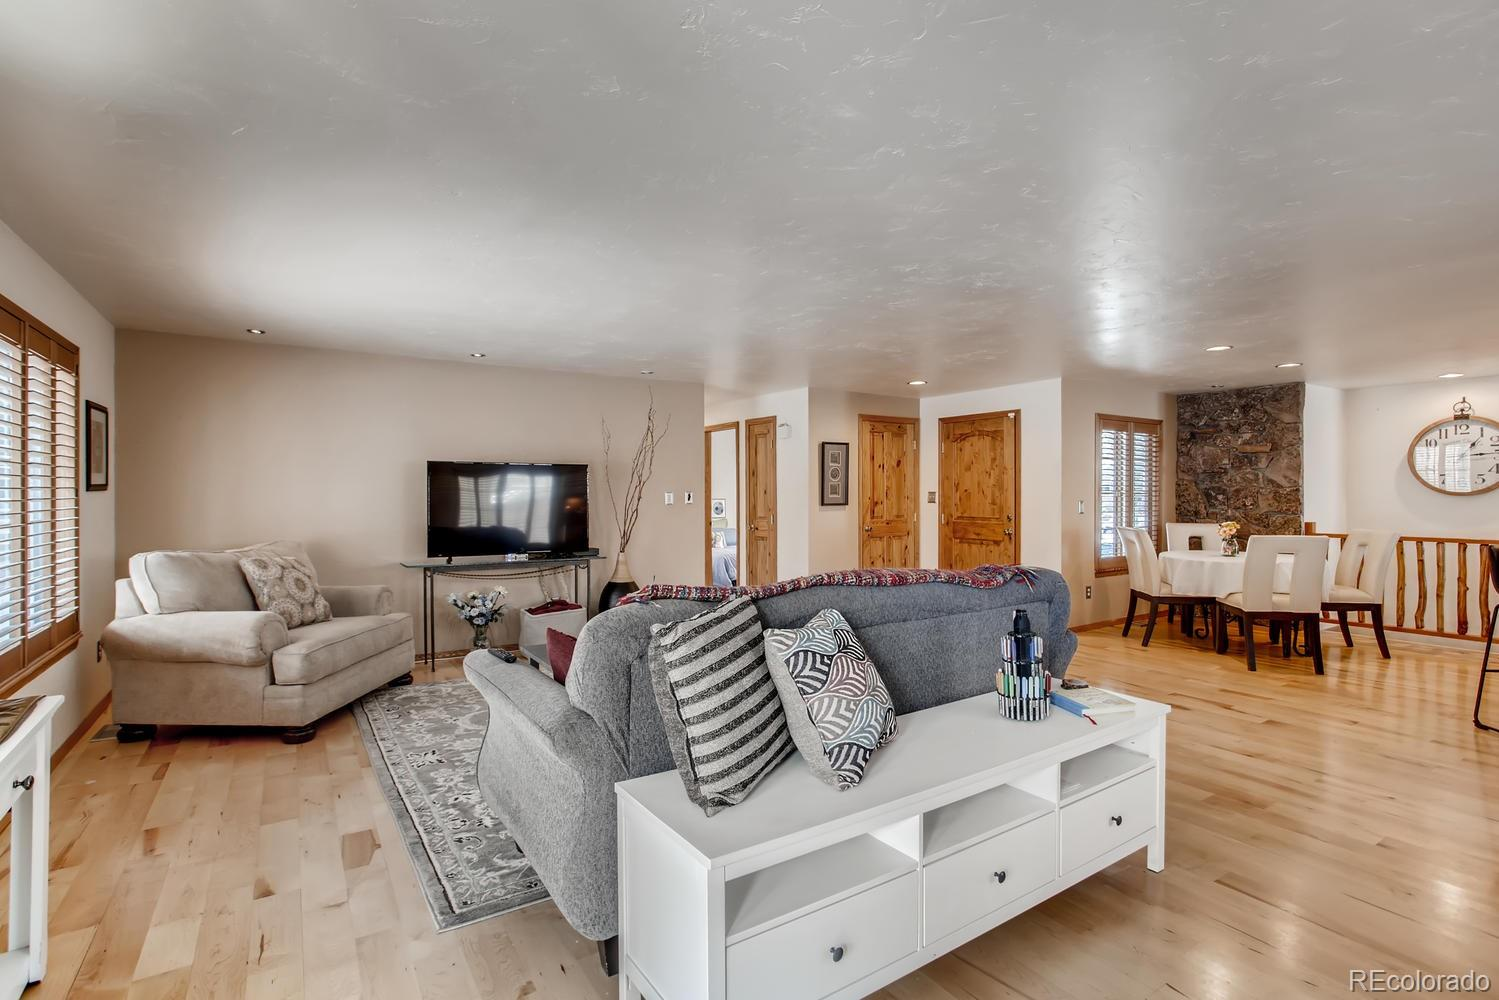 MLS# 4853831 - 6 - 13905 W 6th Place, Golden, CO 80401